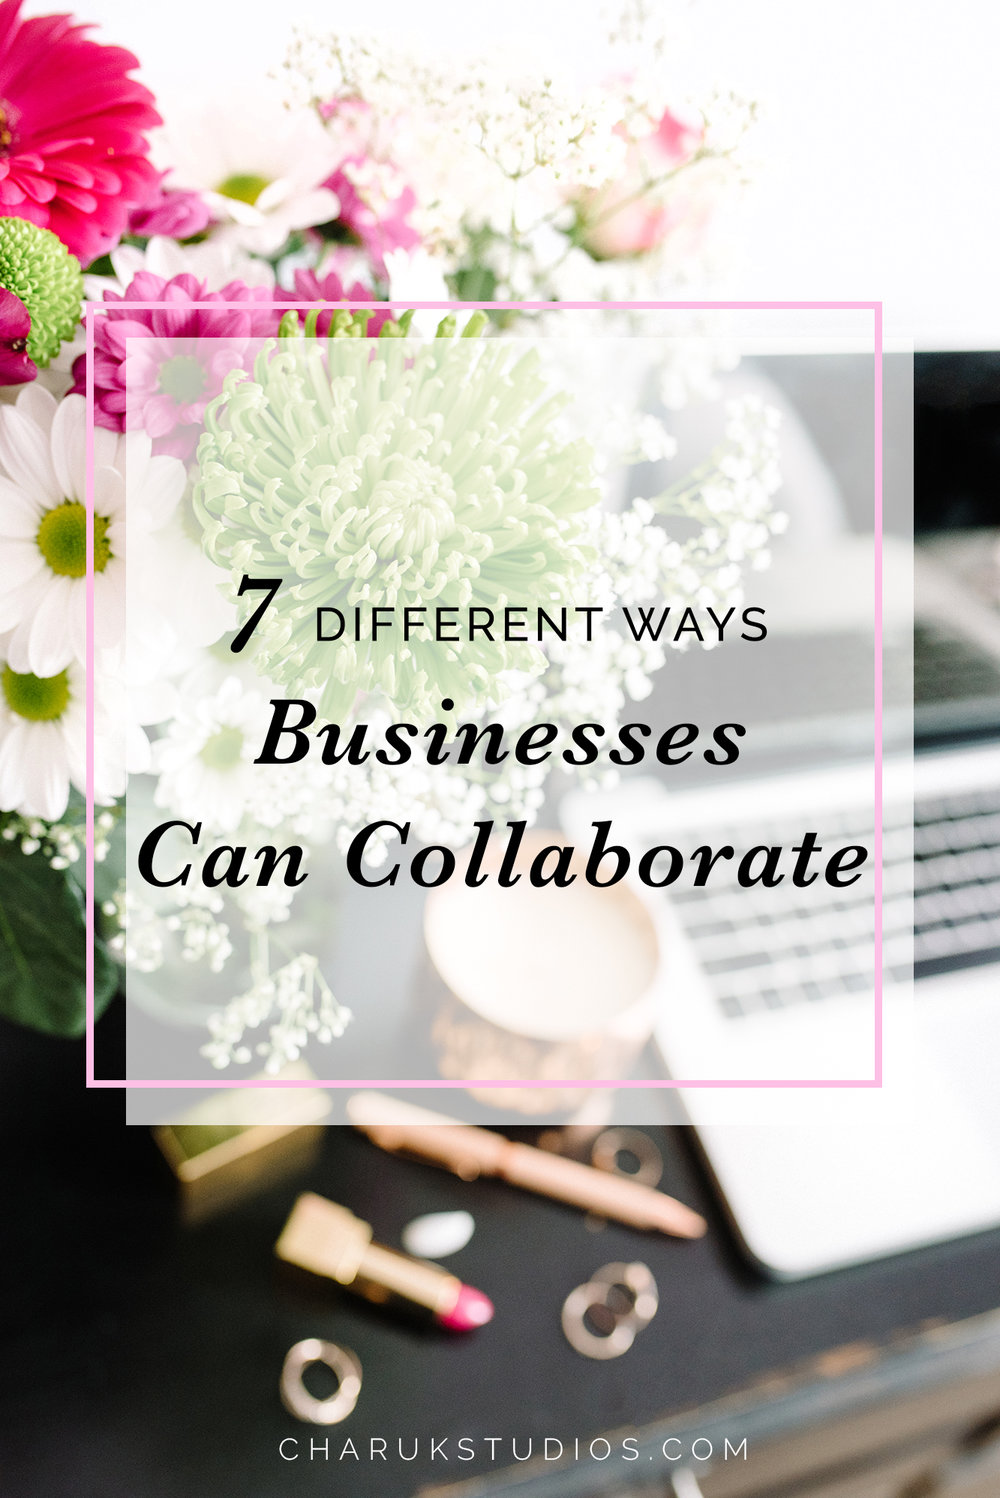 7 Different Ways Businesses Can Collaborate by Charuk Studios